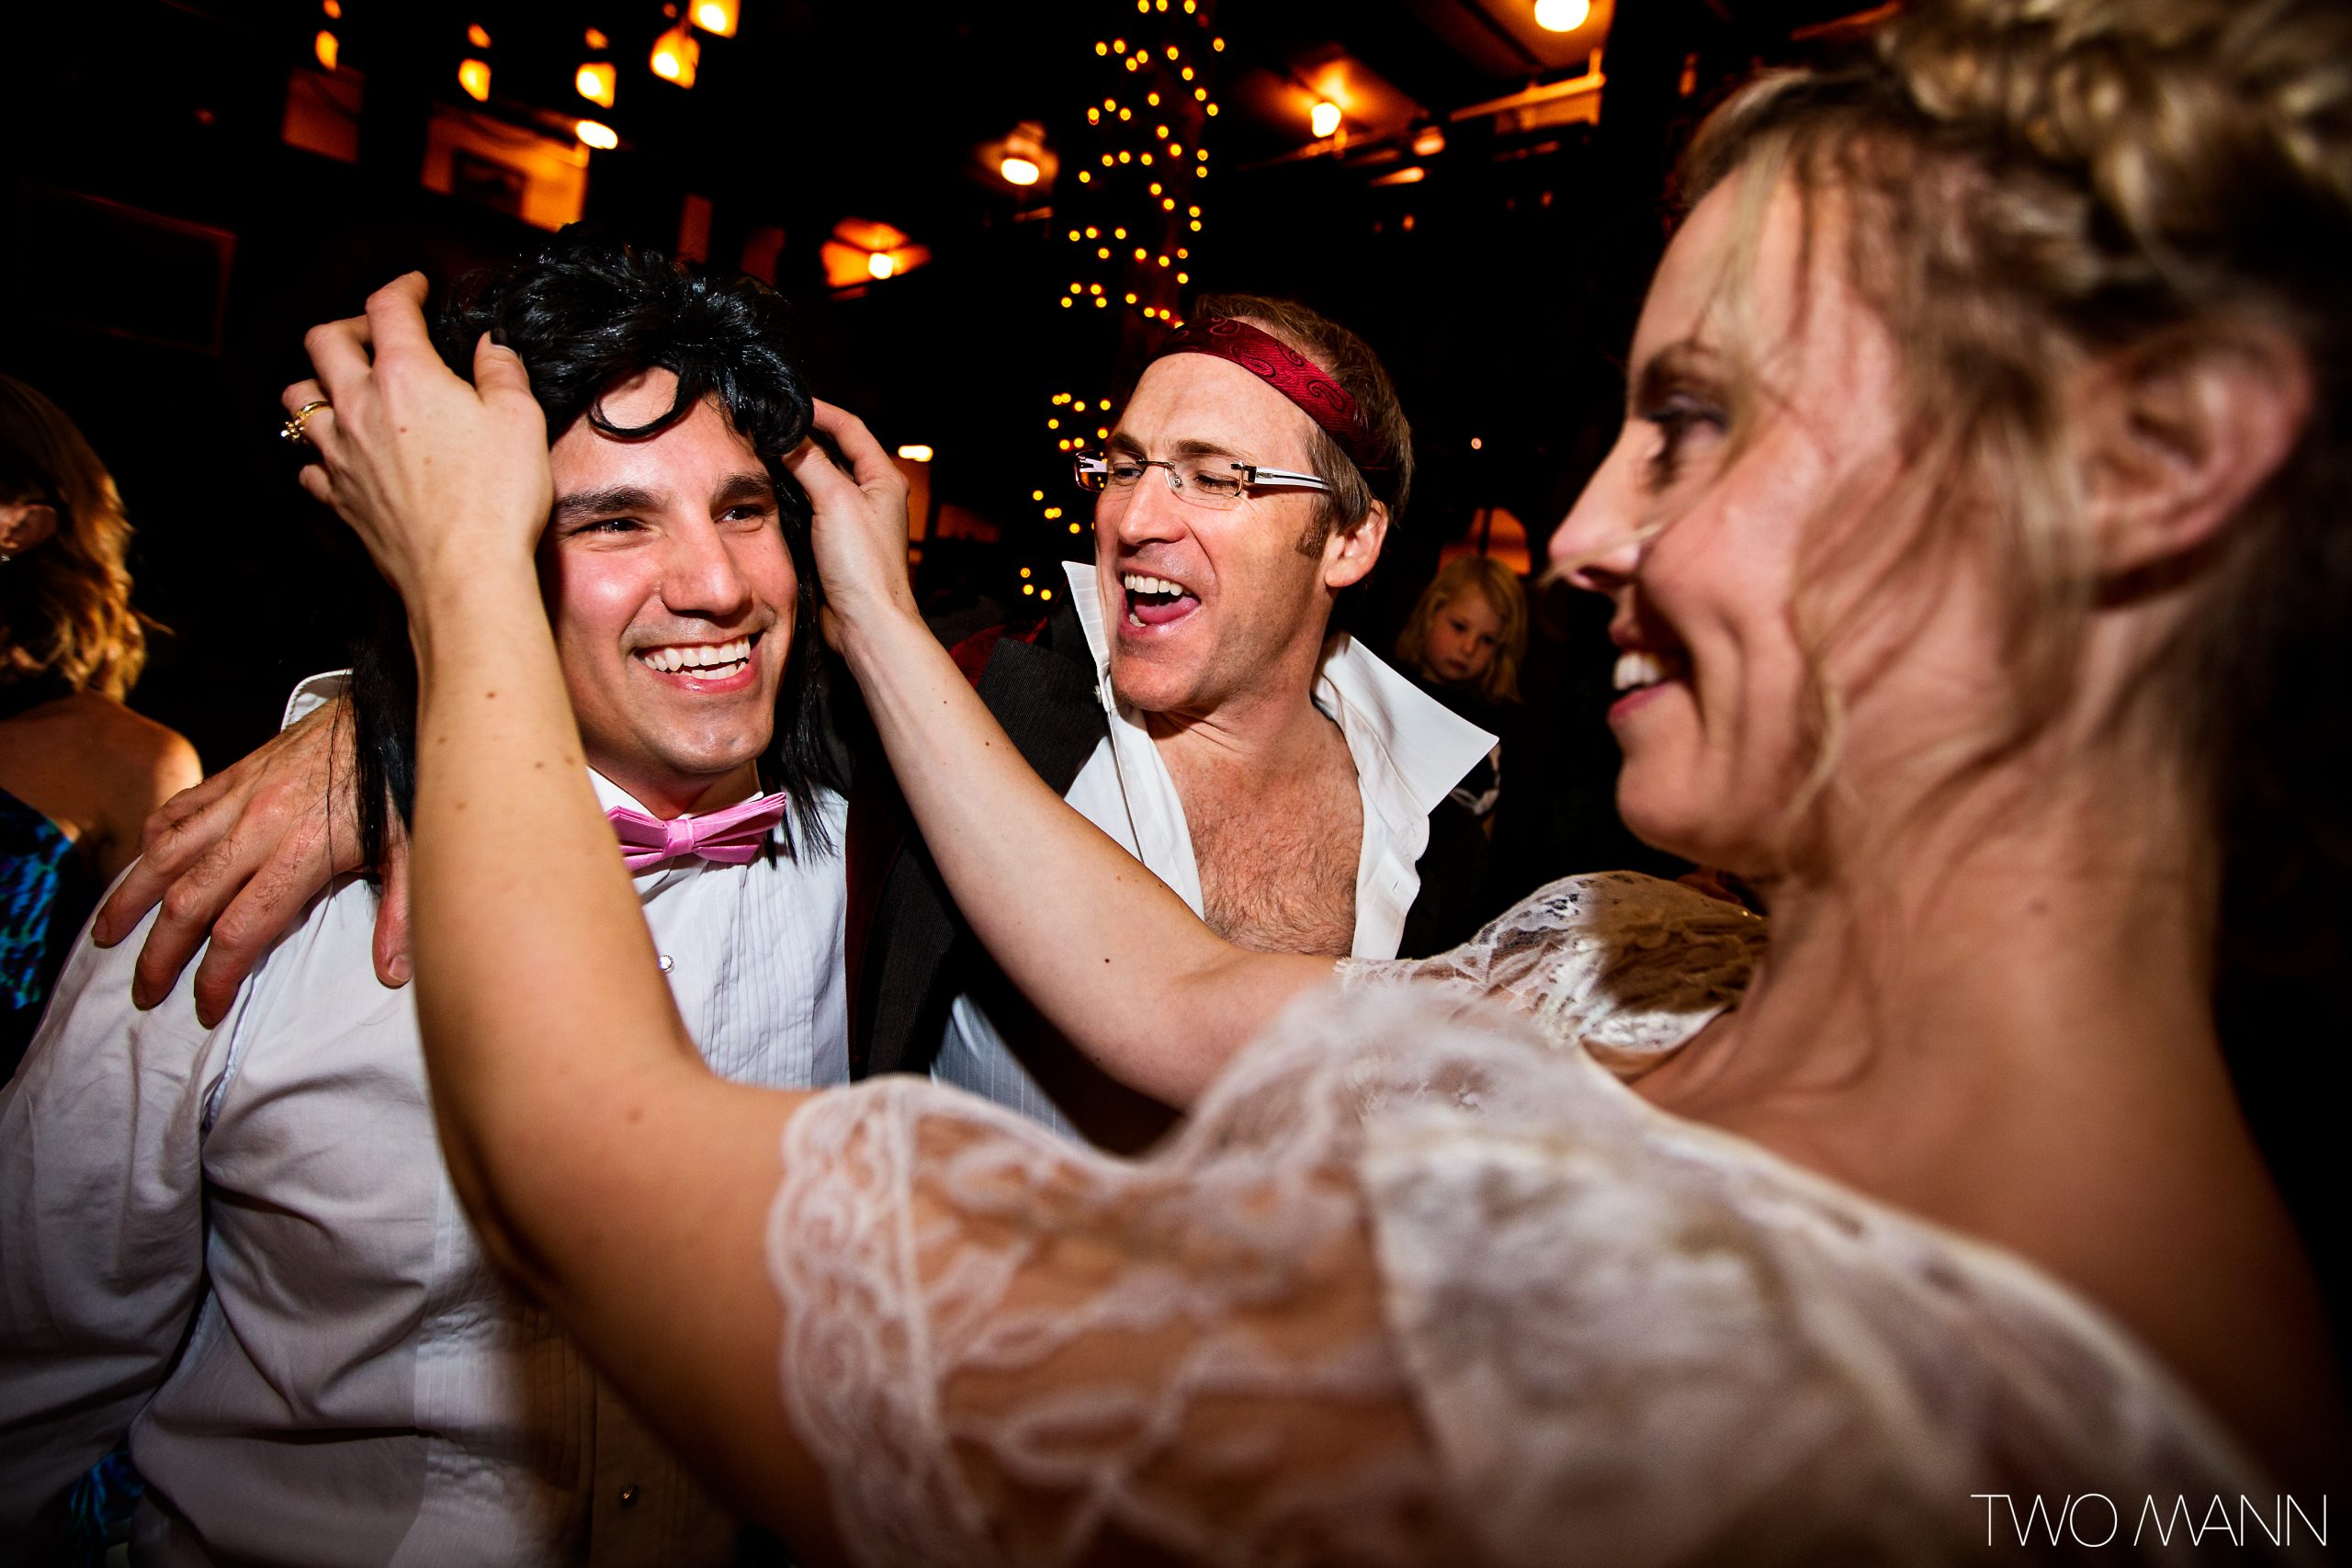 a bride putting on a wig for the groom at retro 80's reception dance party